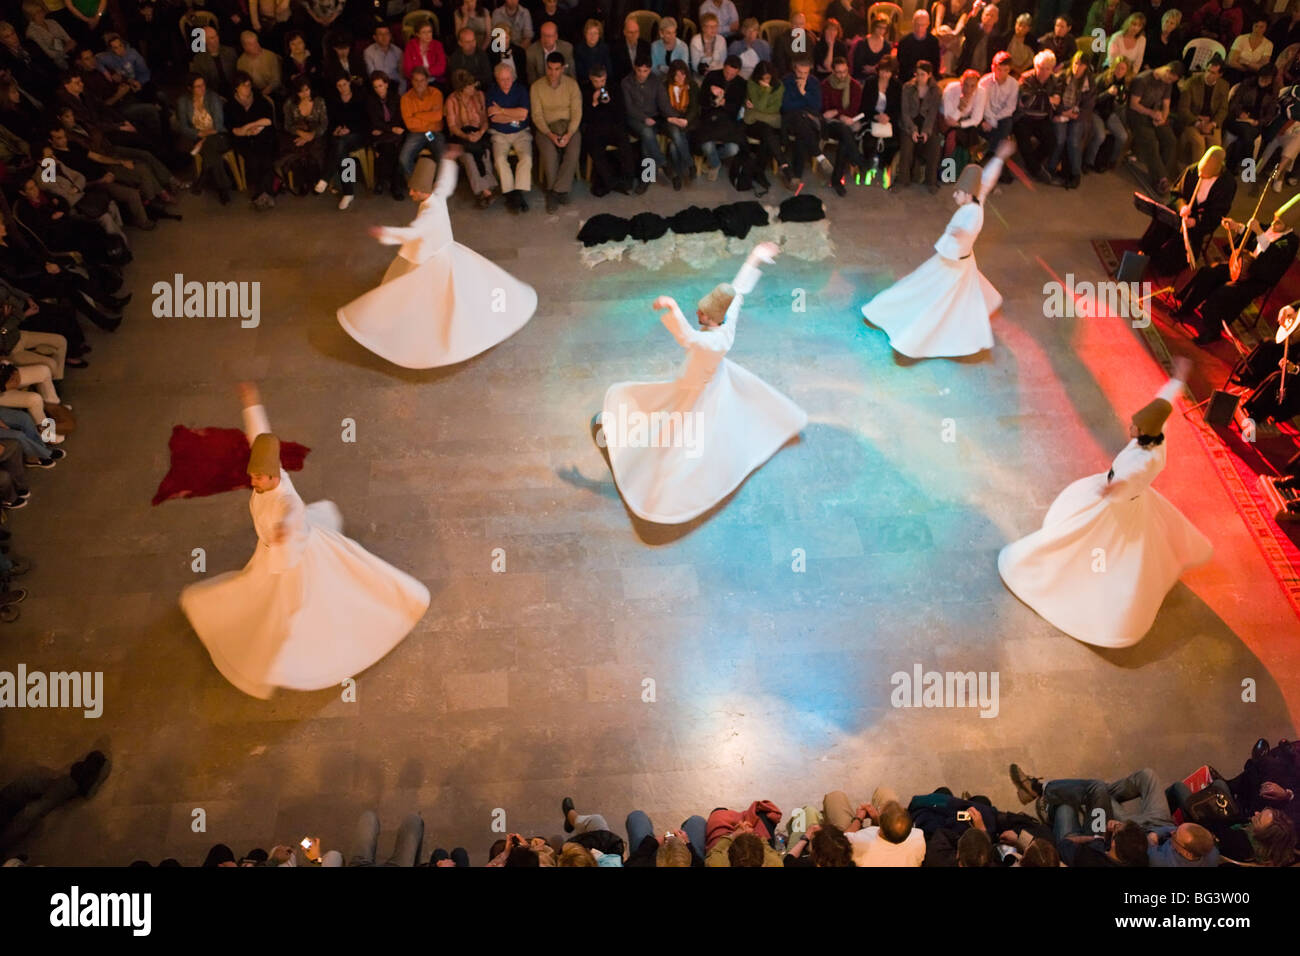 The Mevlevi, (Whirling Dervishes) performing the Sufi dance, Istanbul, Turkey, Europe Stock Photo